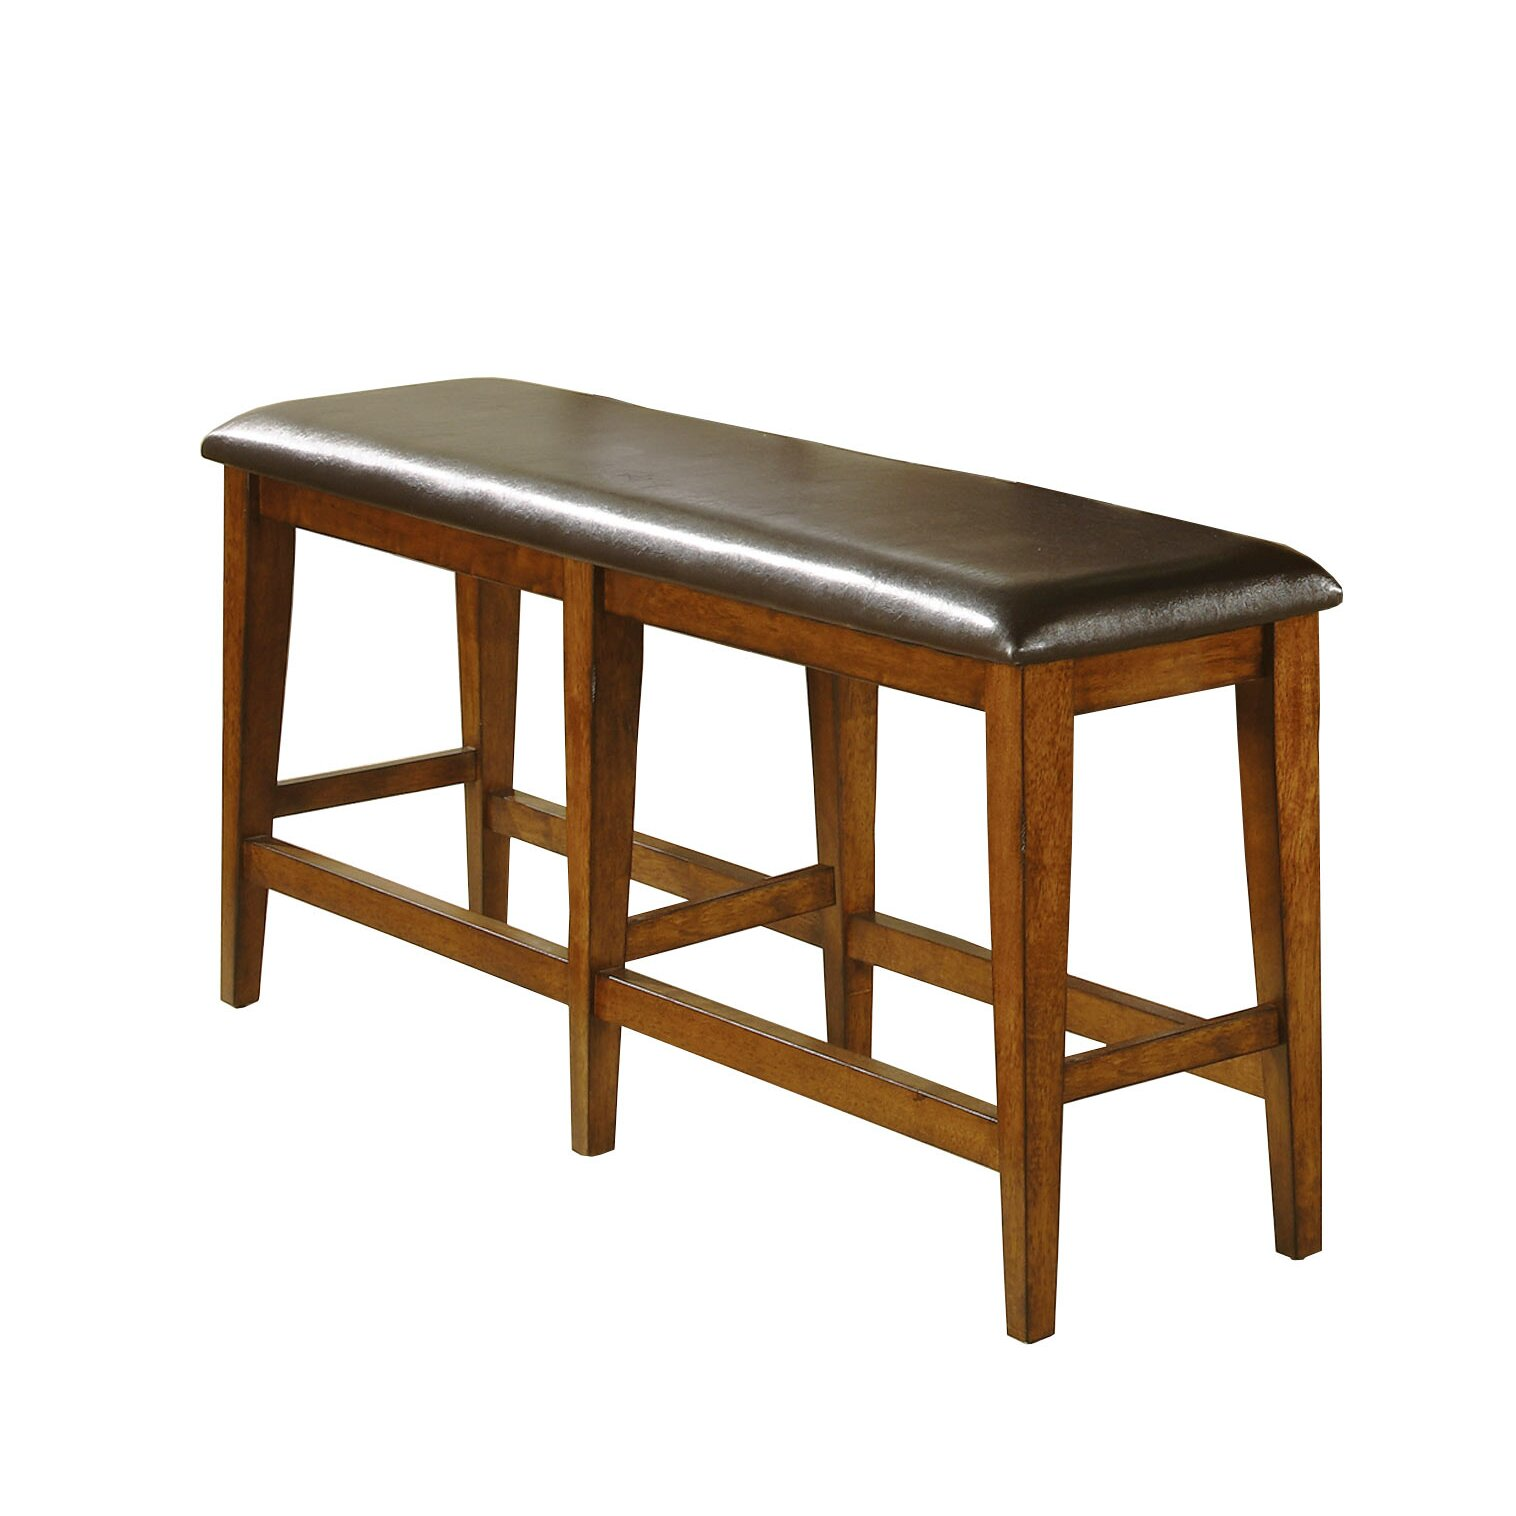 Loon Peak Agatha Upholstered Kitchen Bench & Reviews